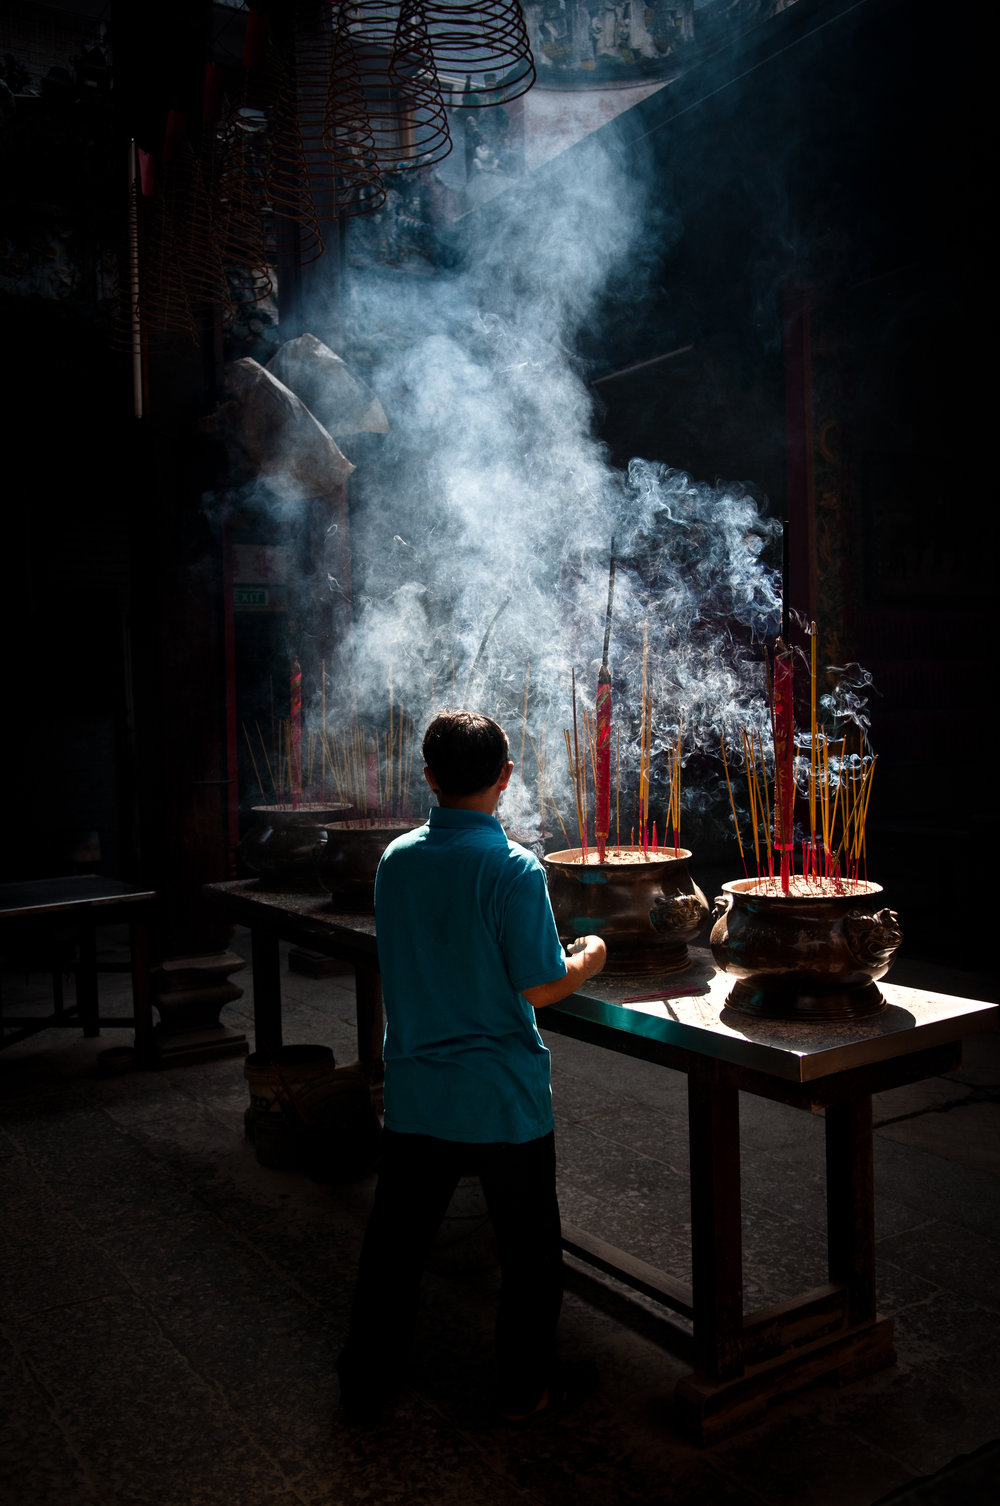 that incense smell - everywhere you will smell the sweet notes of incense